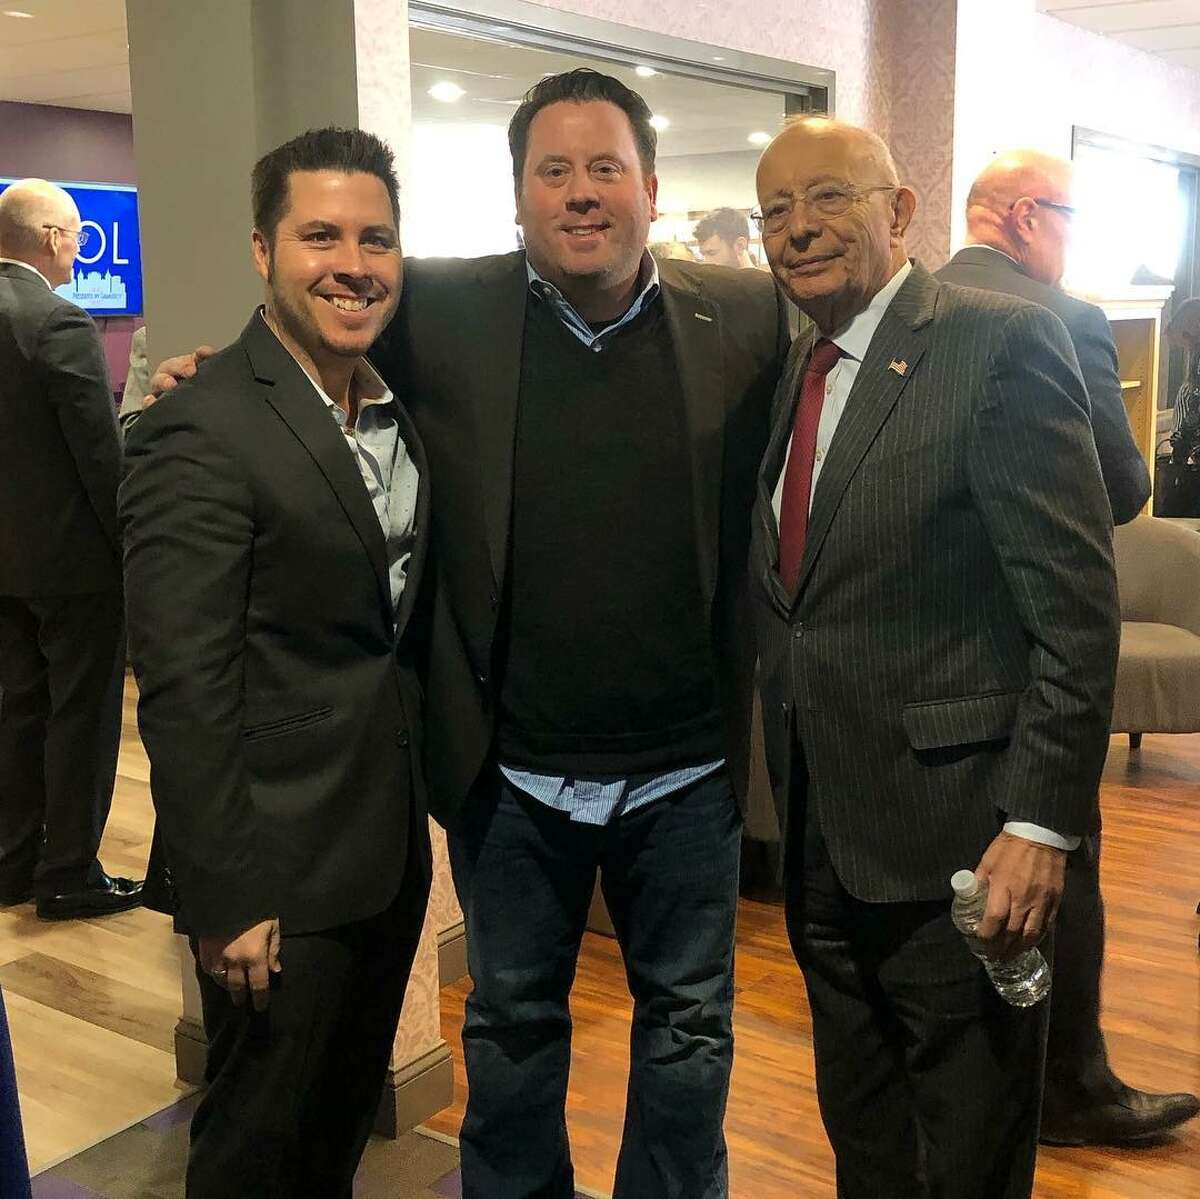 Were you Seen at Gramercy's Capitol View event series featuring former U.S. Senator Alfonse D'Amato at Bull Moose Club Albany on Monday, January 14, 2019?